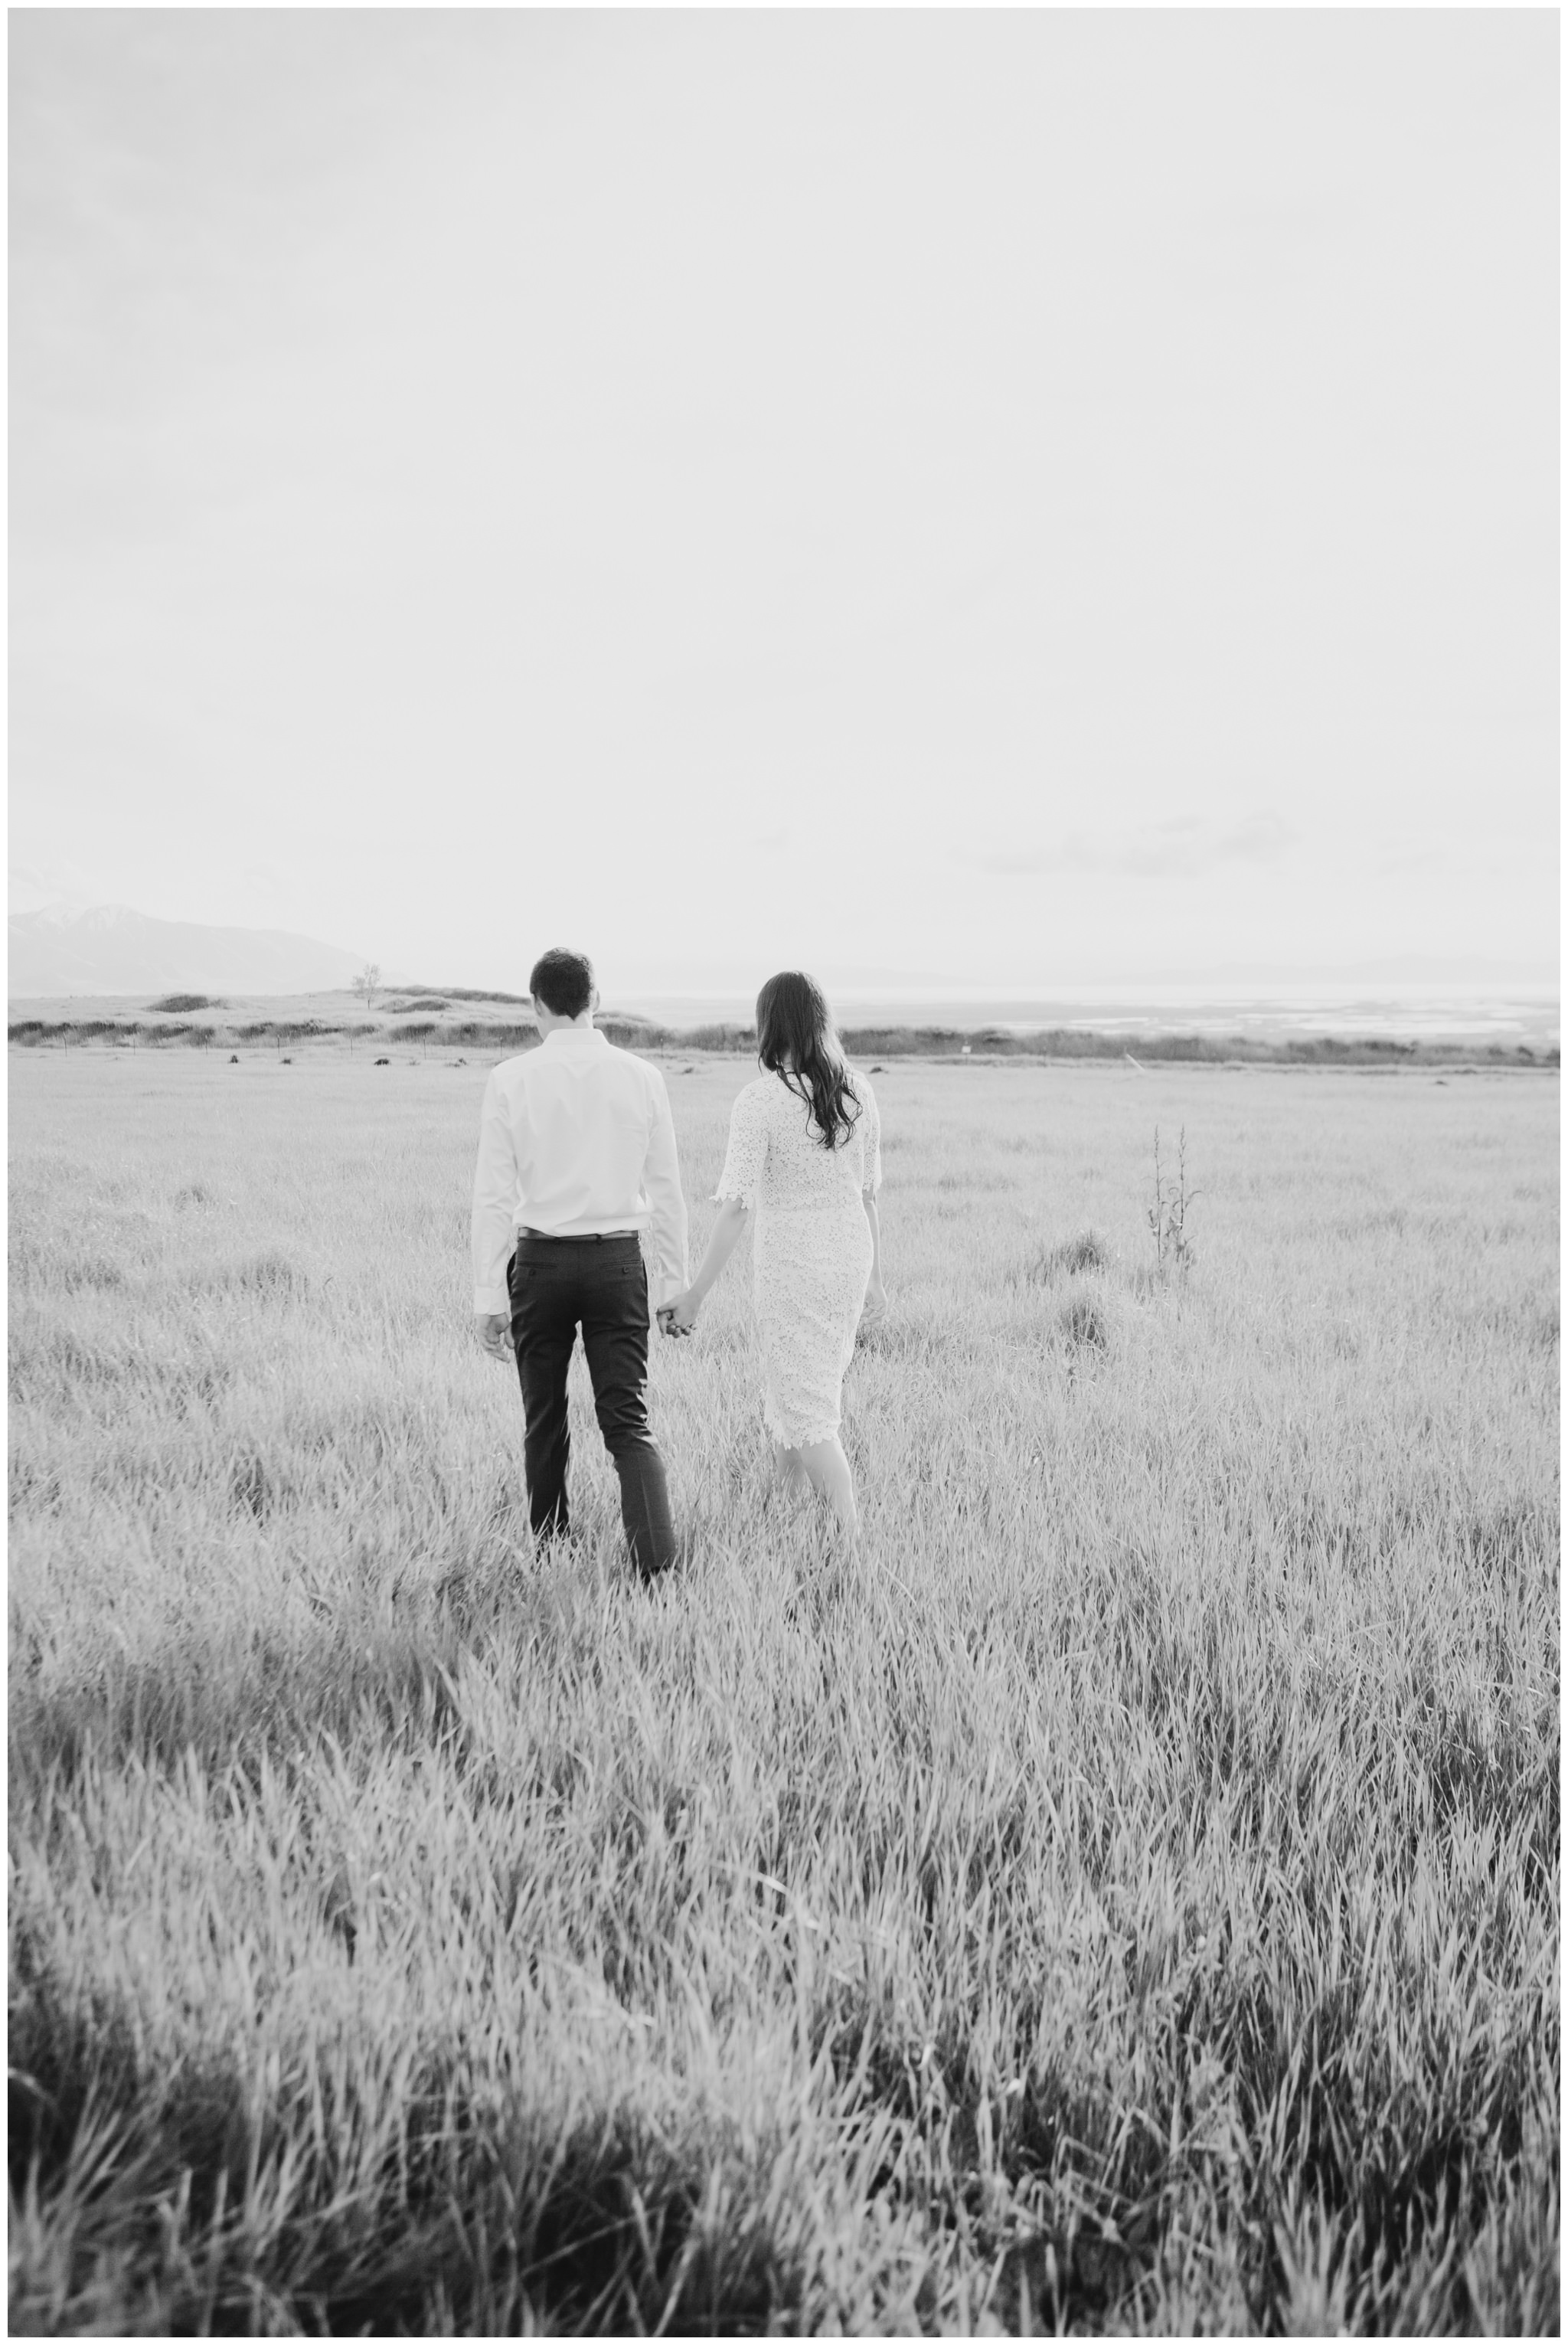 Black and White image of couple walking away together